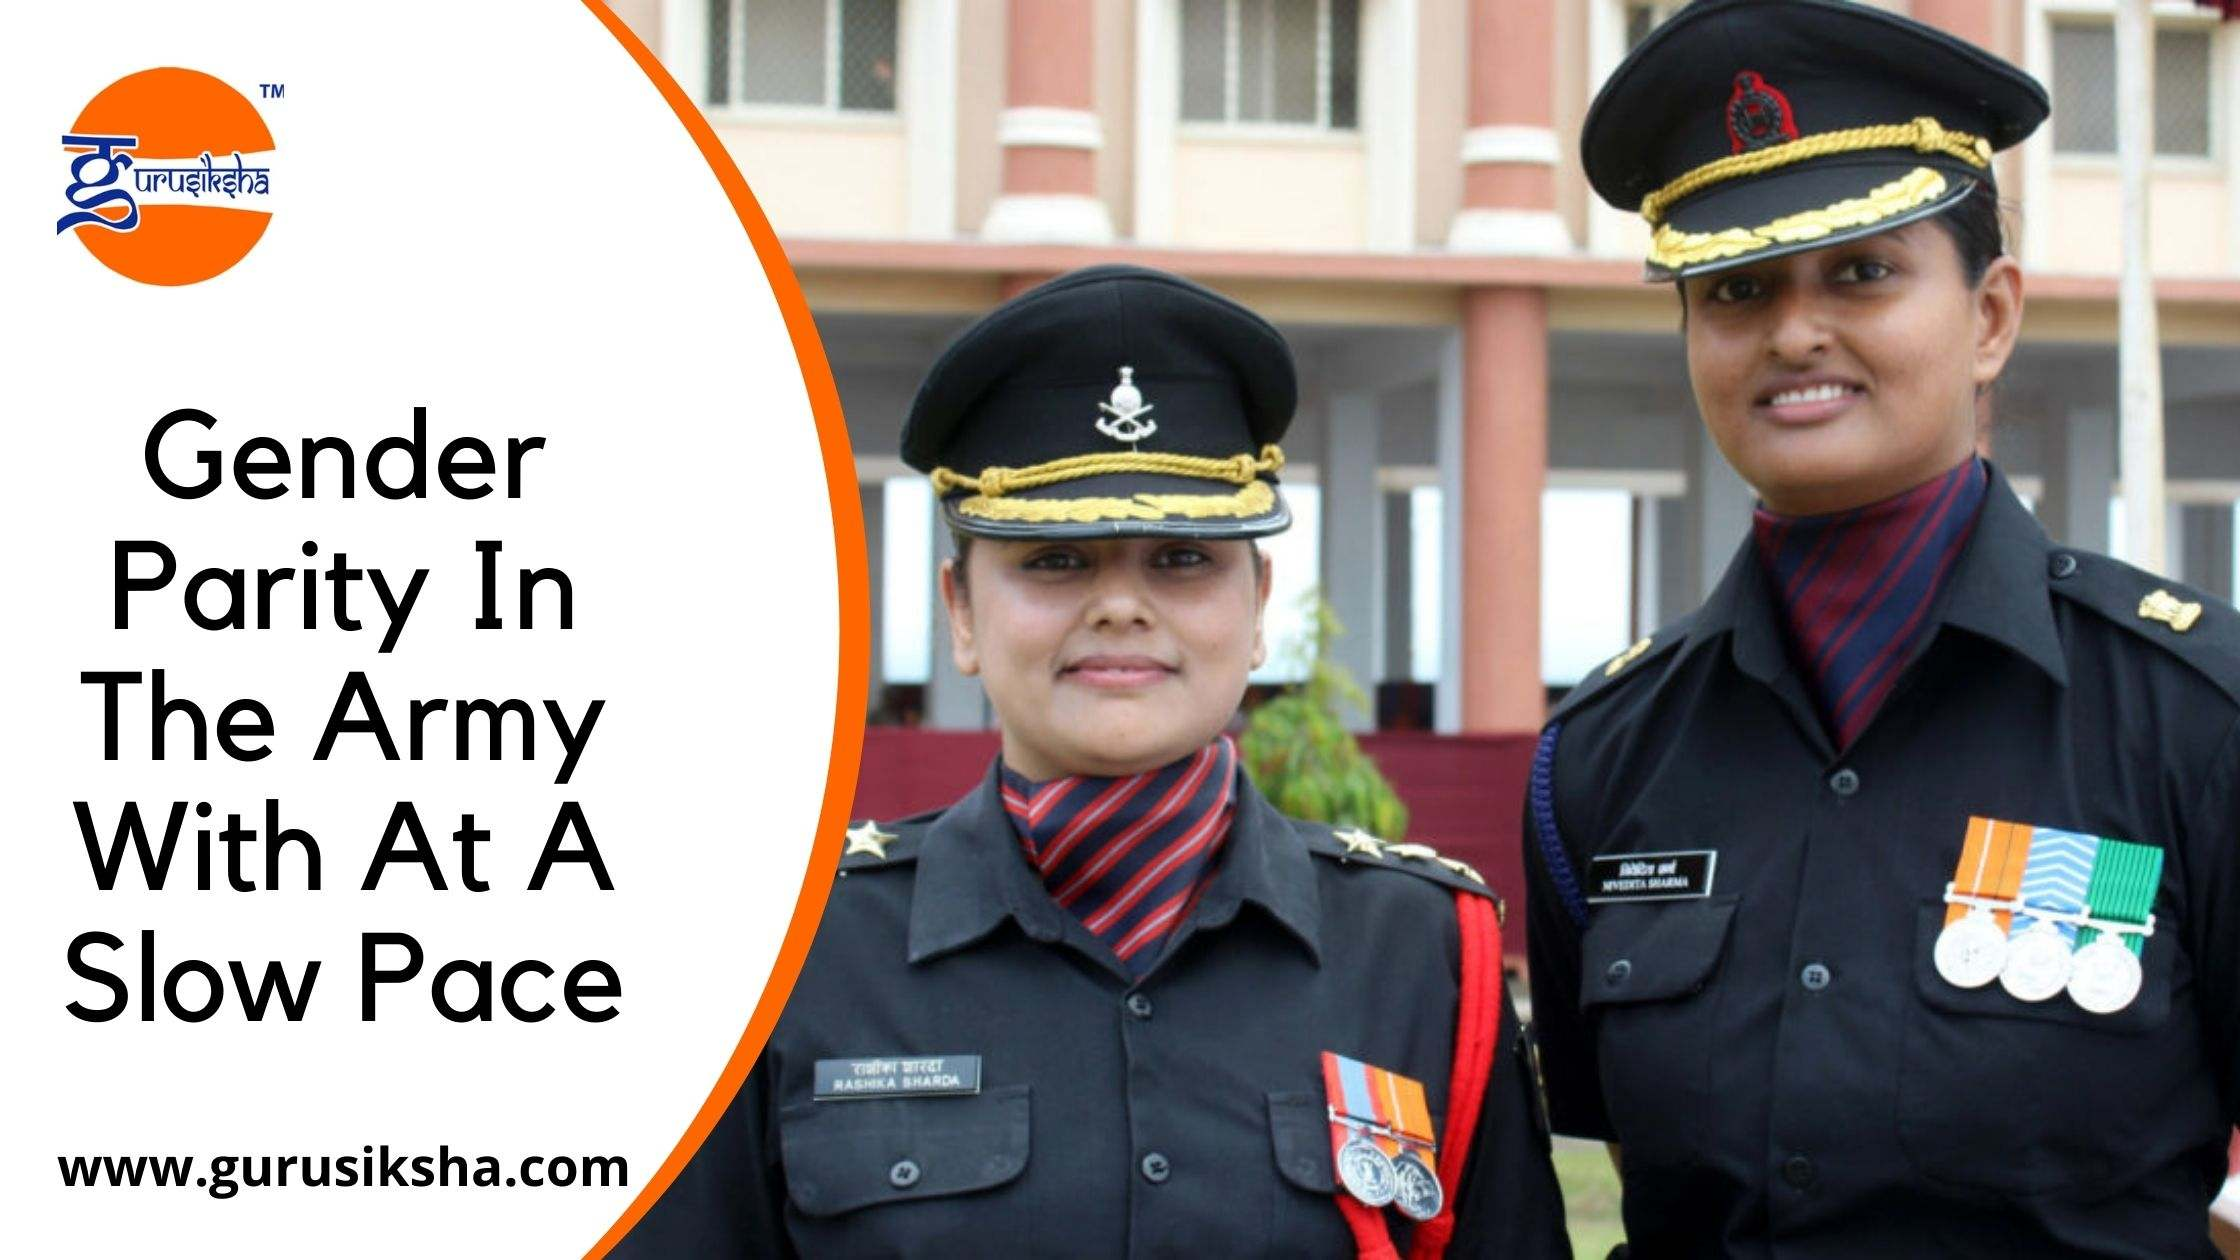 Gender Parity In The Army With At A Slow Pace